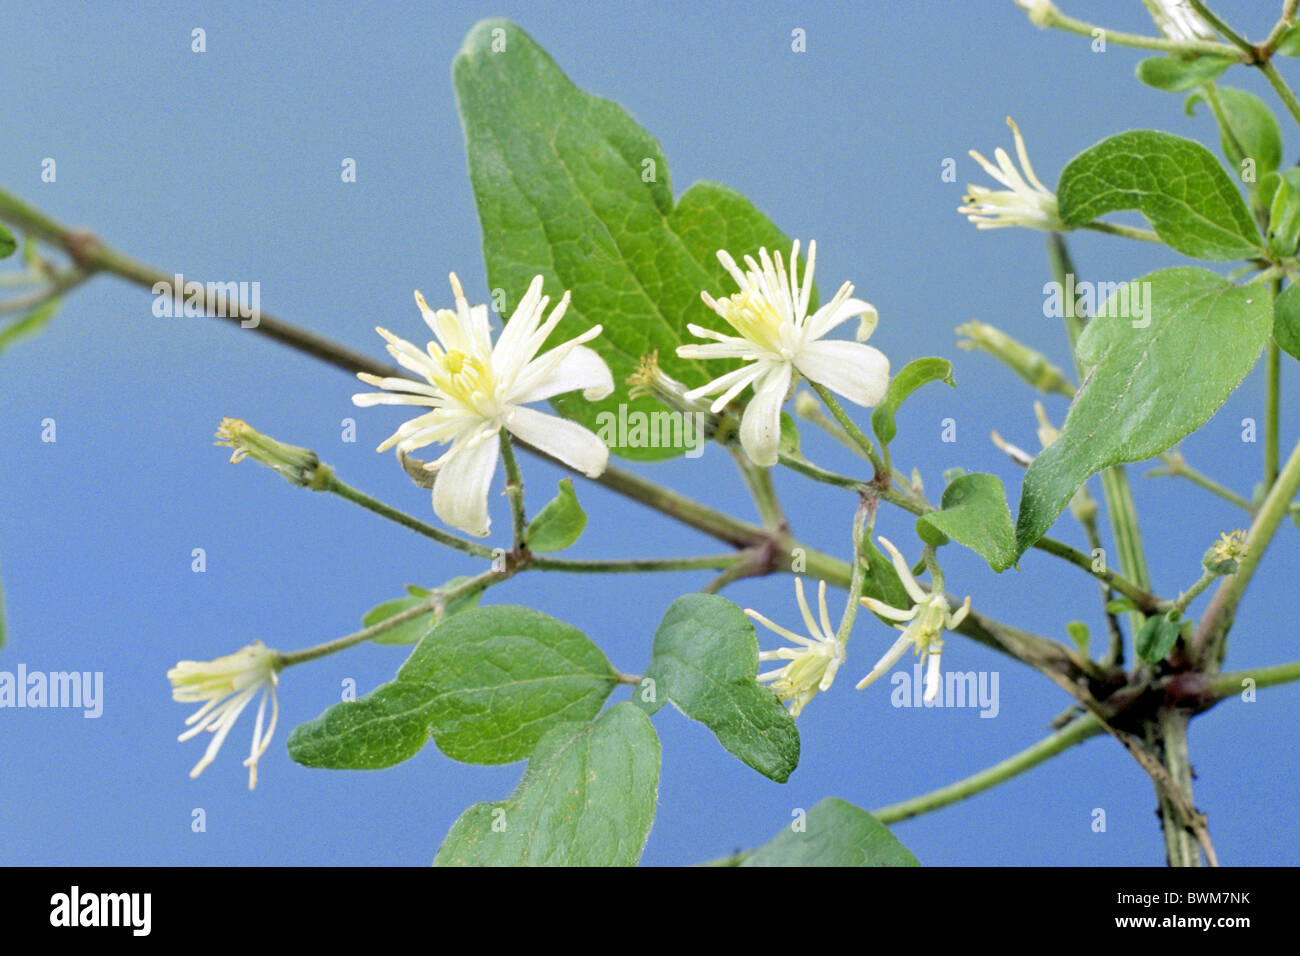 Old Mans Beard, Travellers Joy (Clematis vitalba), flowering. - Stock Image